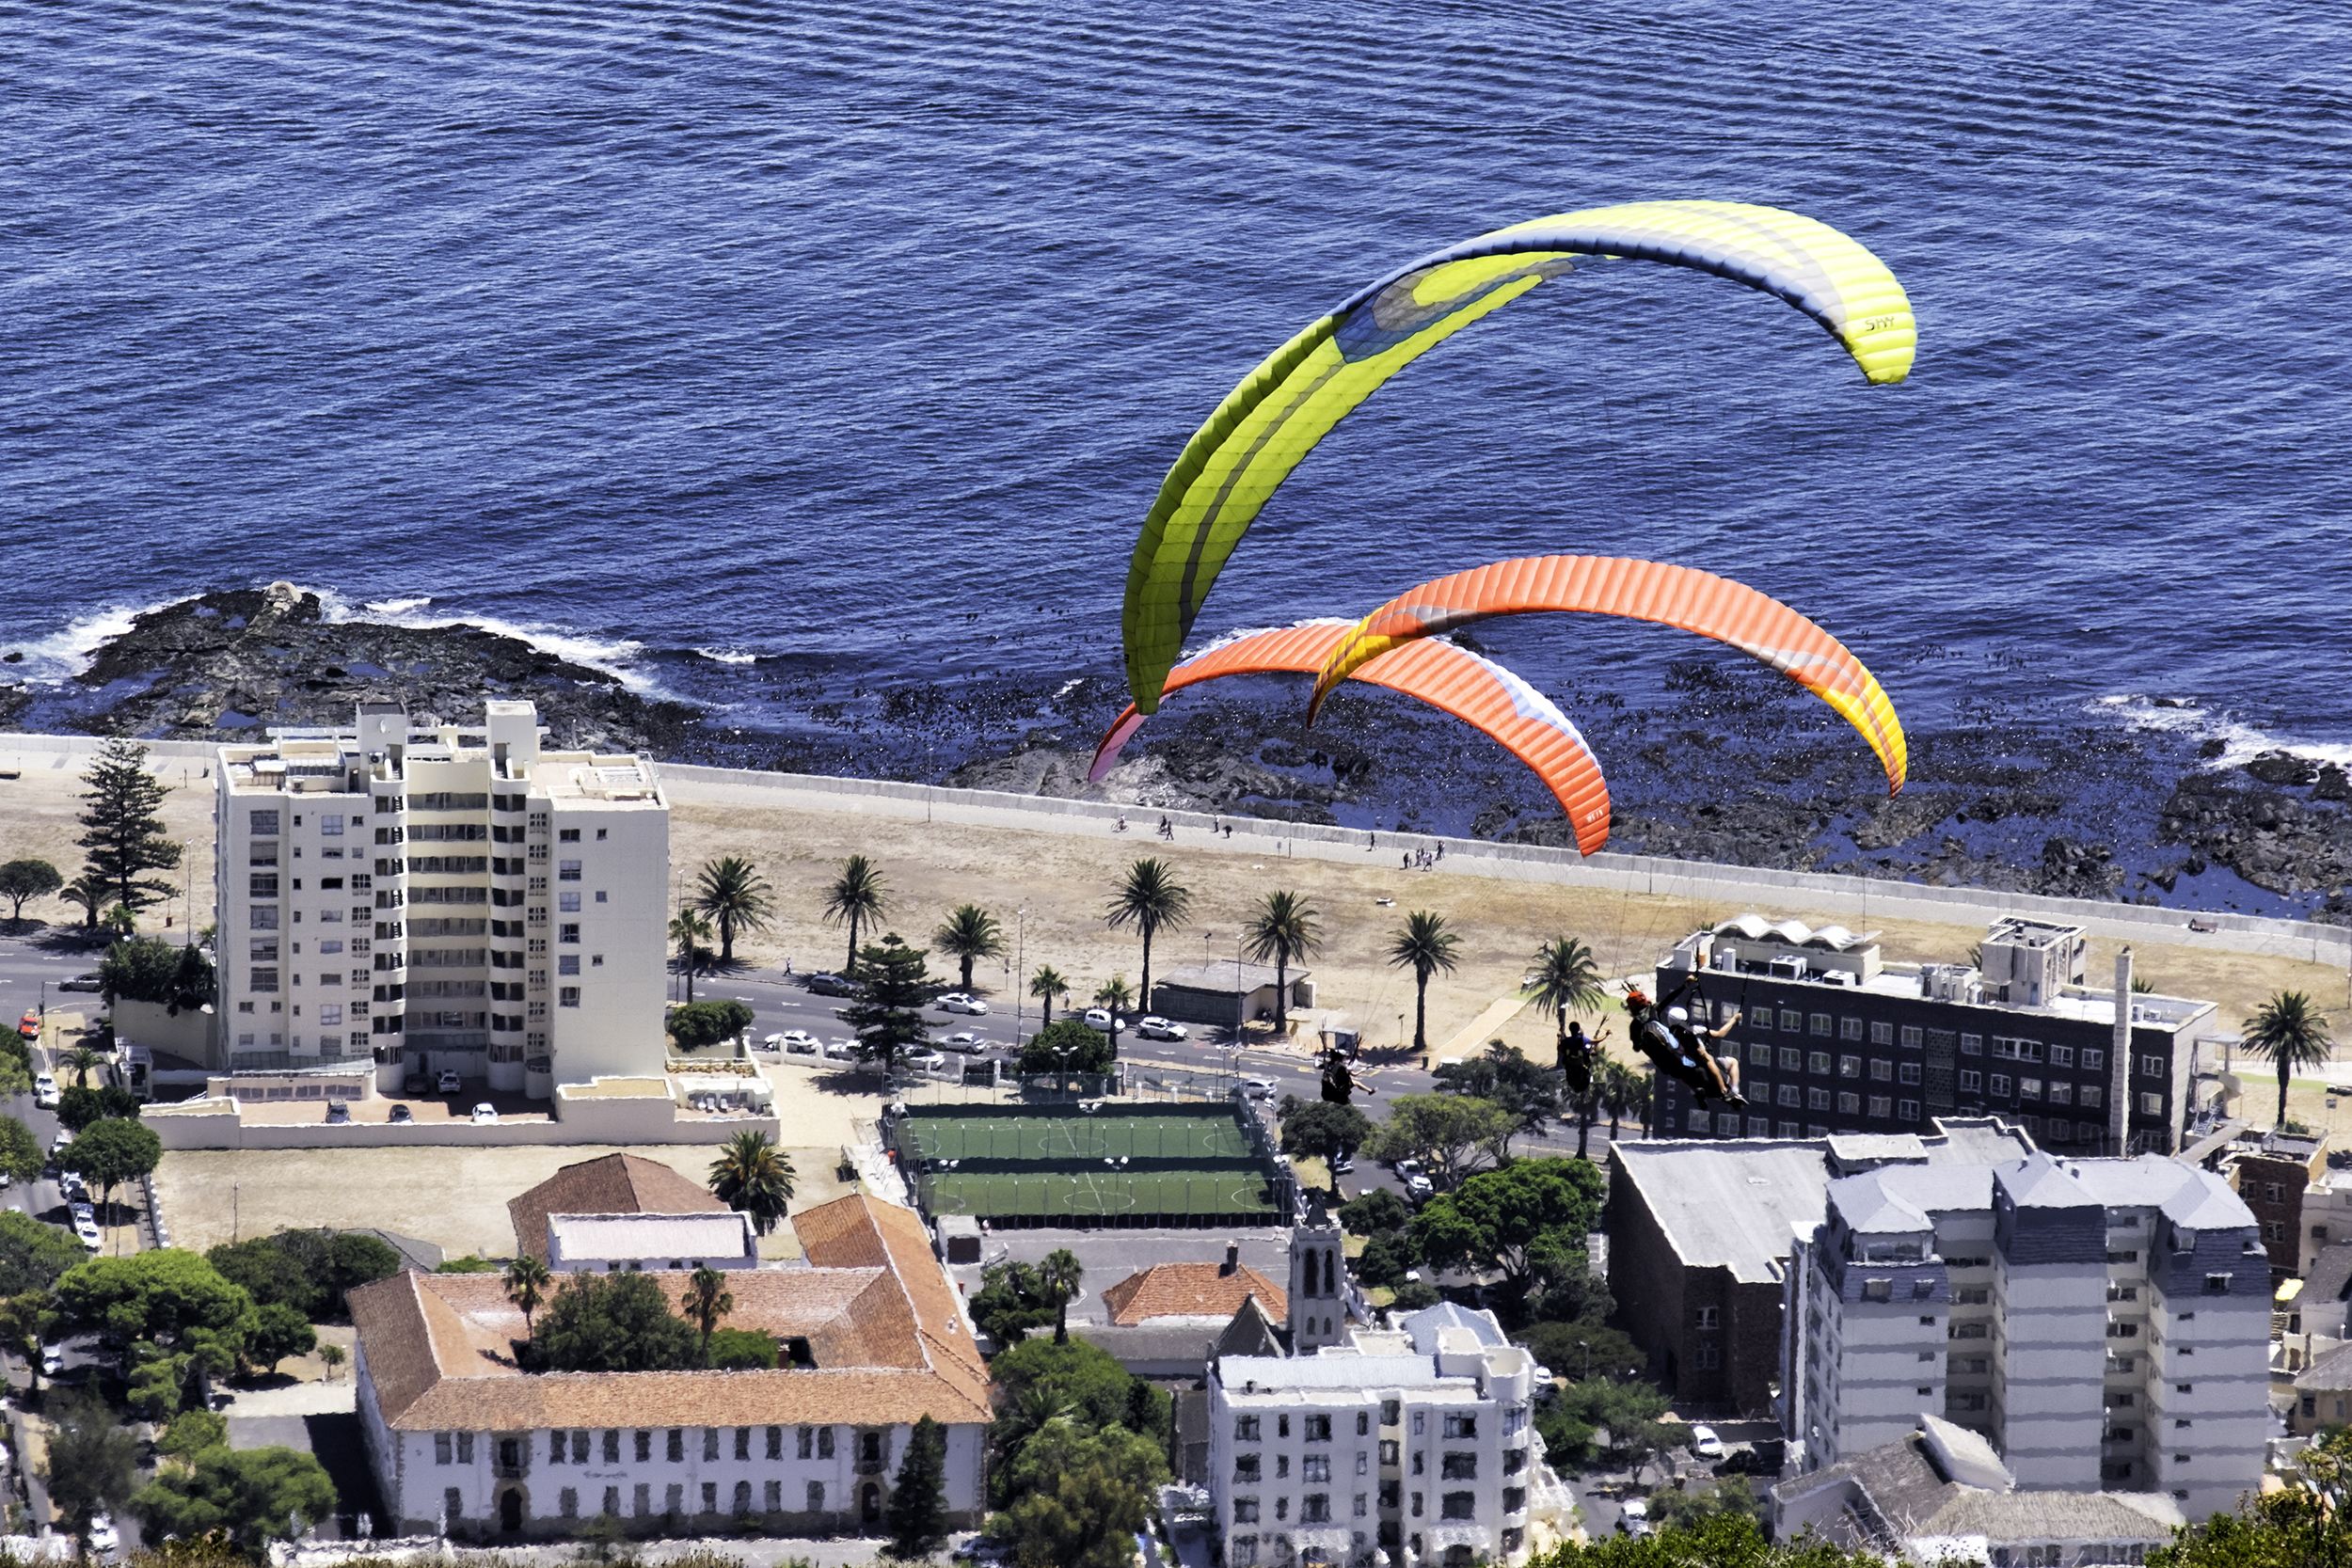 Hang Gliders over Sea Point, Cape Town, South Africa